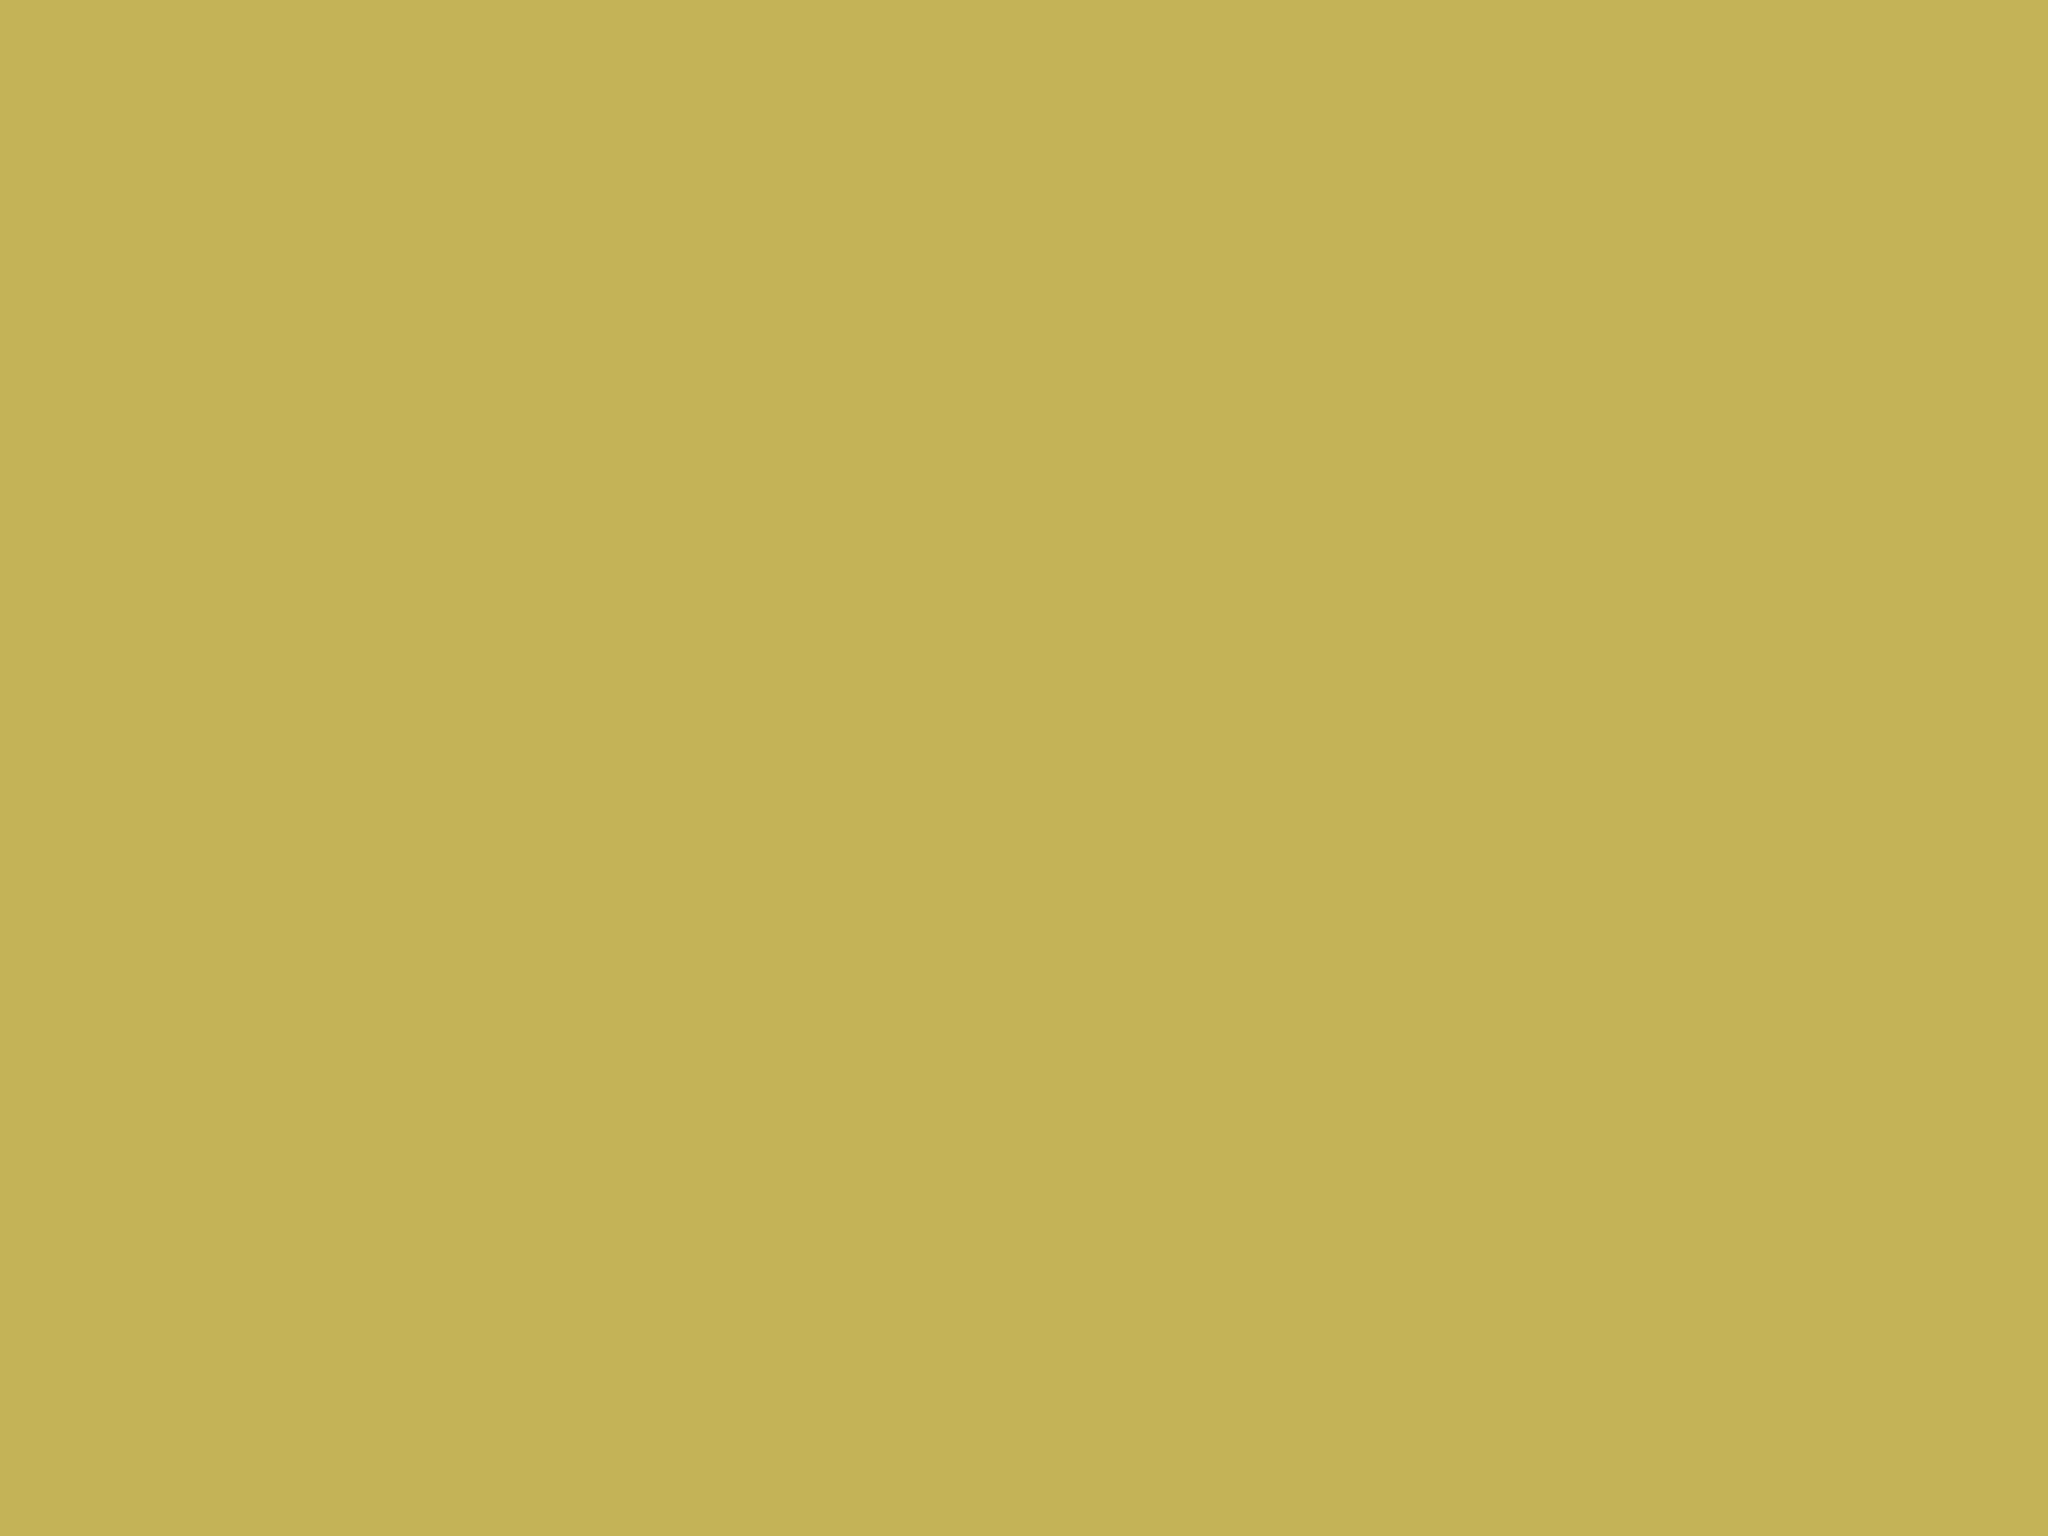 Metallic Gold Color Background 2048x1536 vegas gold solidGold Color Background